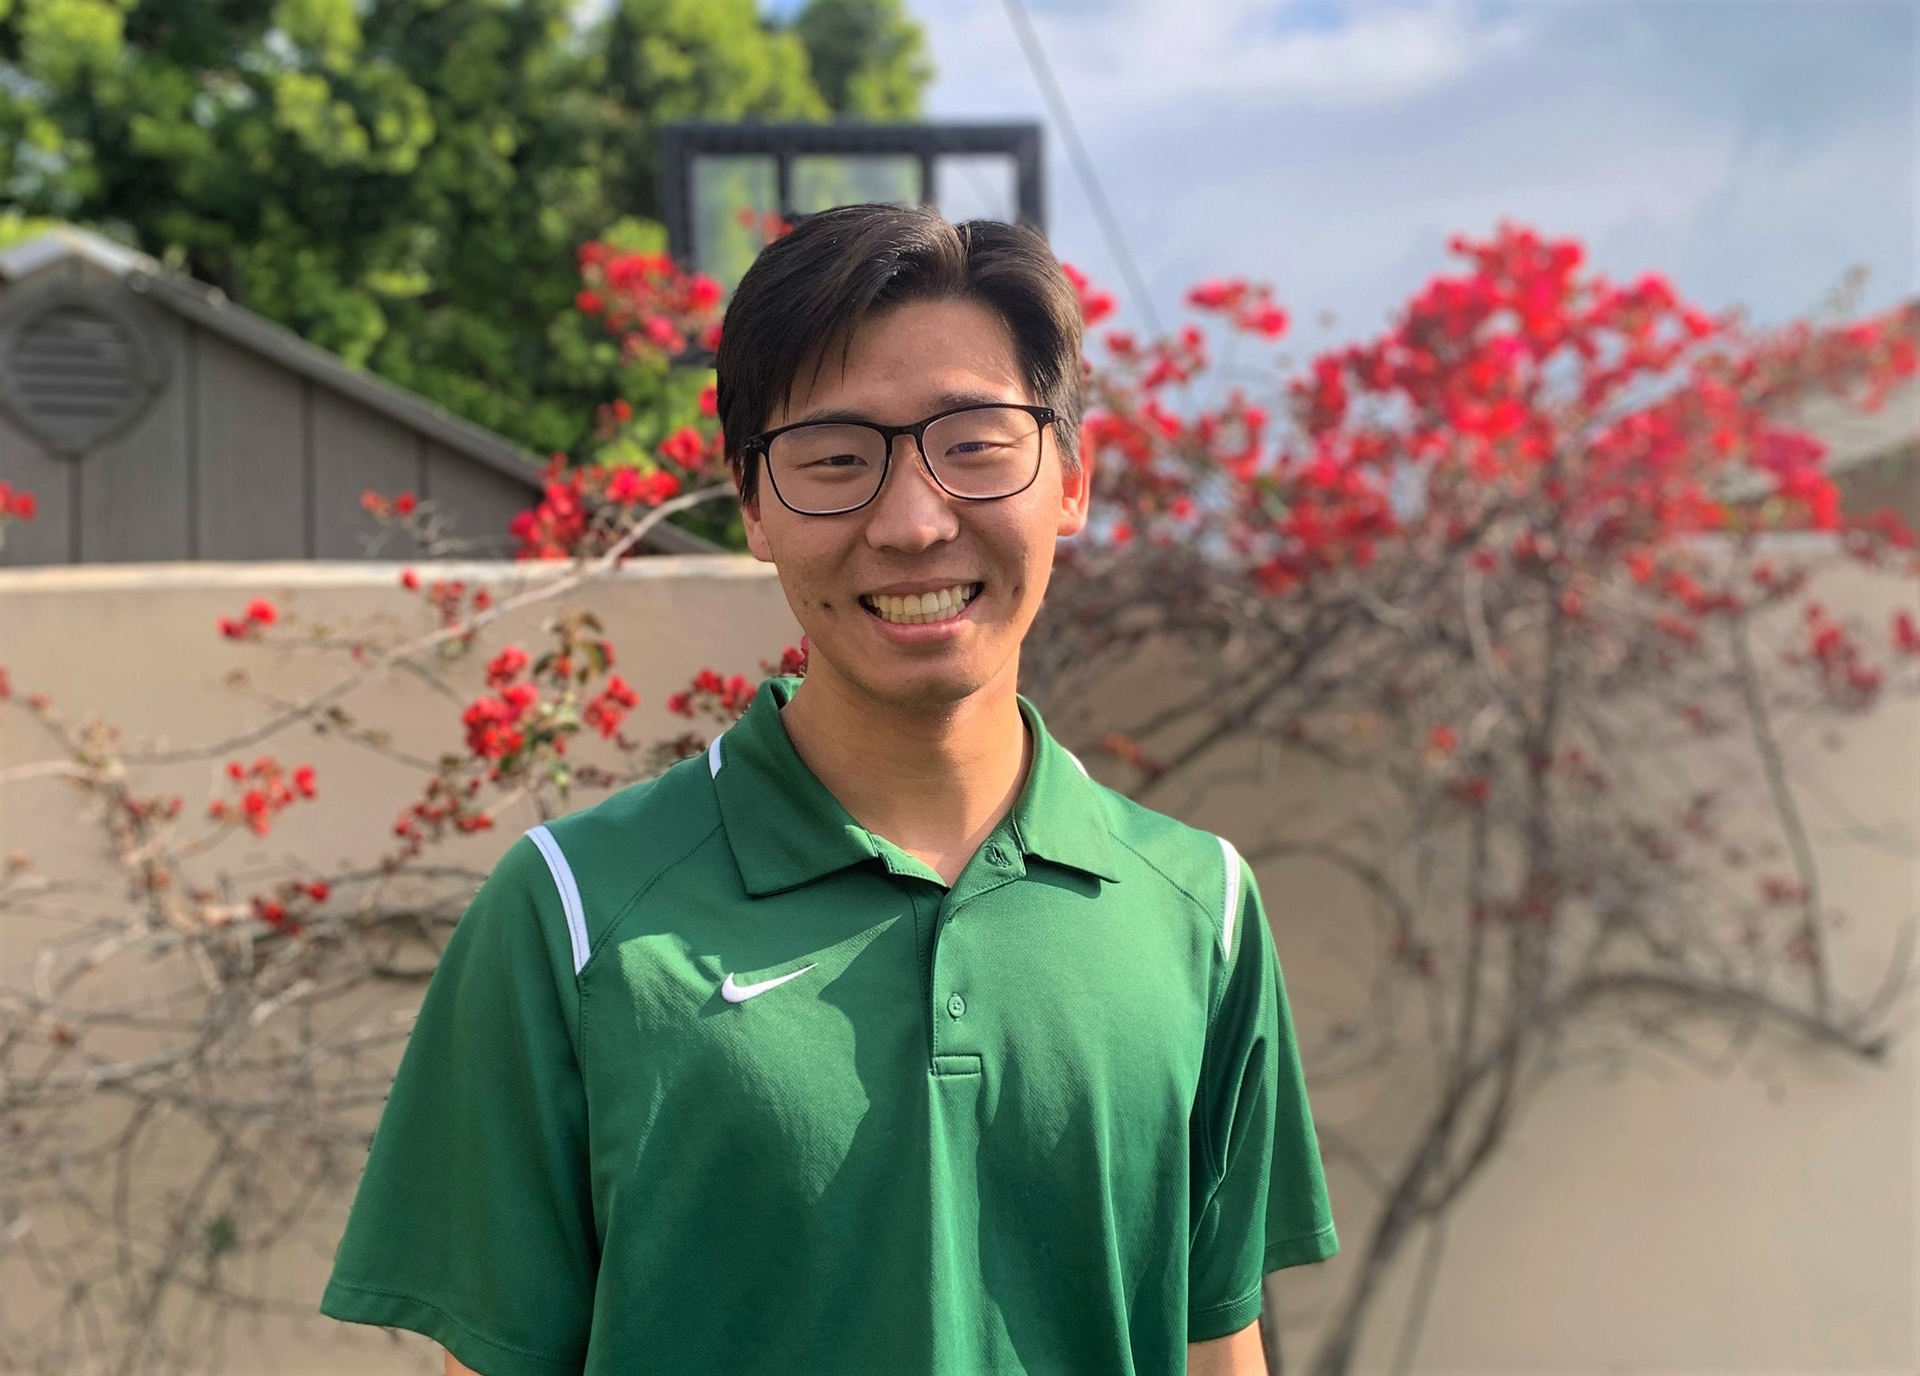 2020 Edison Scholar Tony Chang is passionate about the environment and plans to study environmental science at Stanford University.